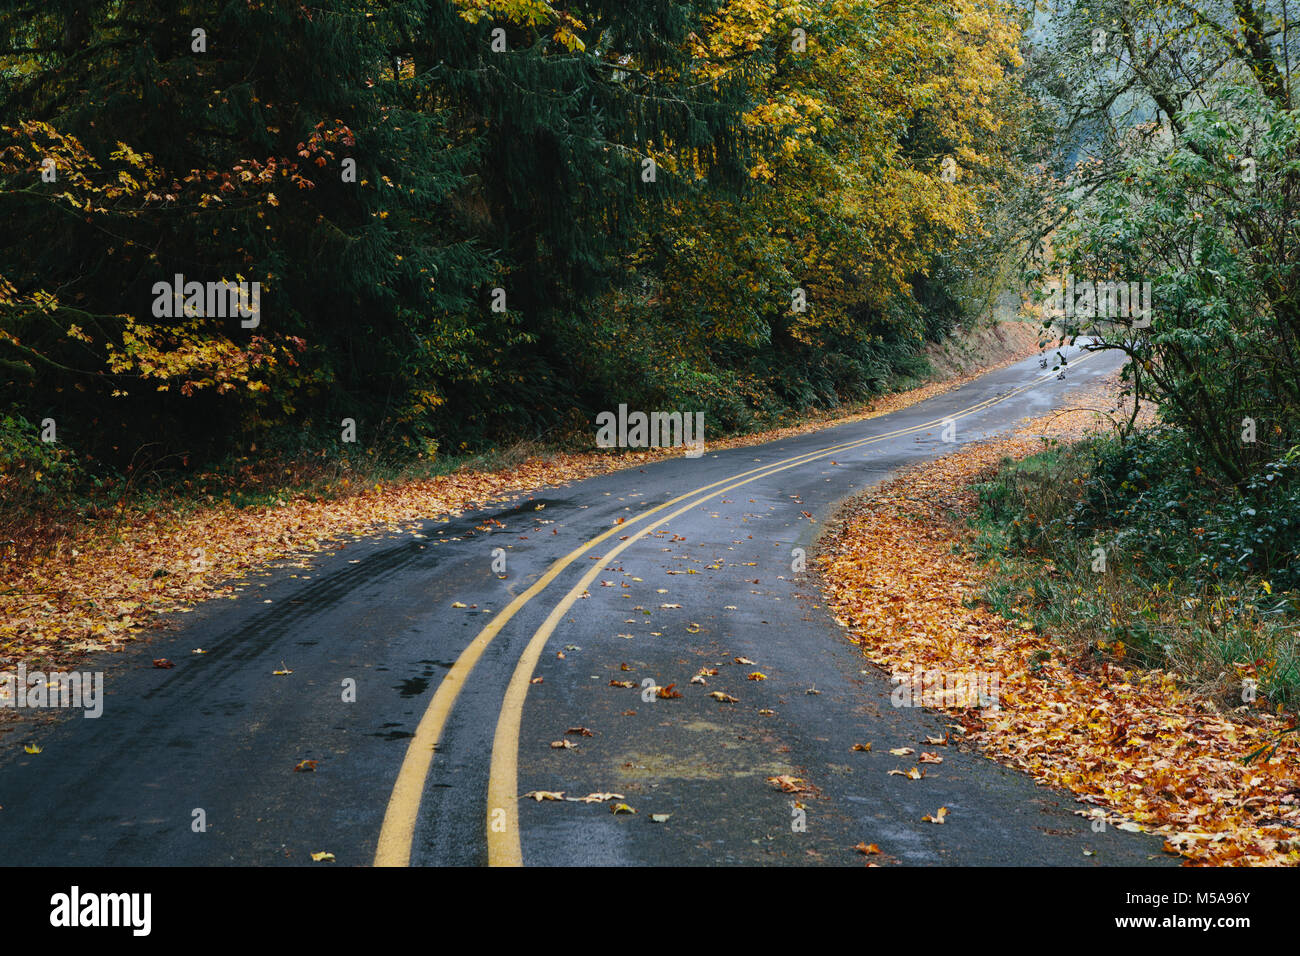 Curving road through a forest in autumn, fallen leaves lining the edges of the road. - Stock Image